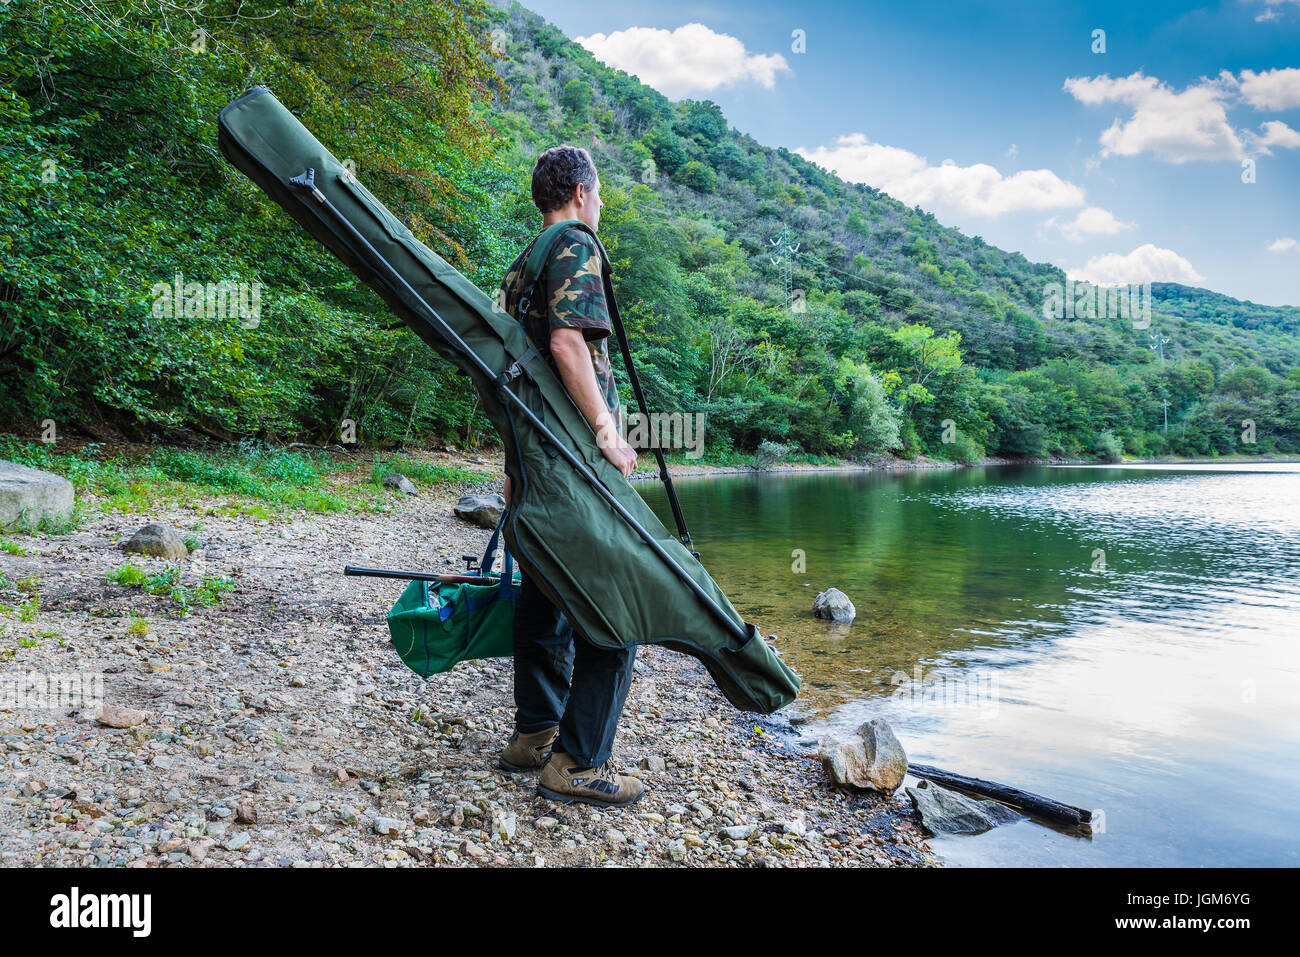 Fishing adventures, carp fishing. Fisherman on a lake shore with camouflage fishing gear, green bag and mimetic - Stock Image